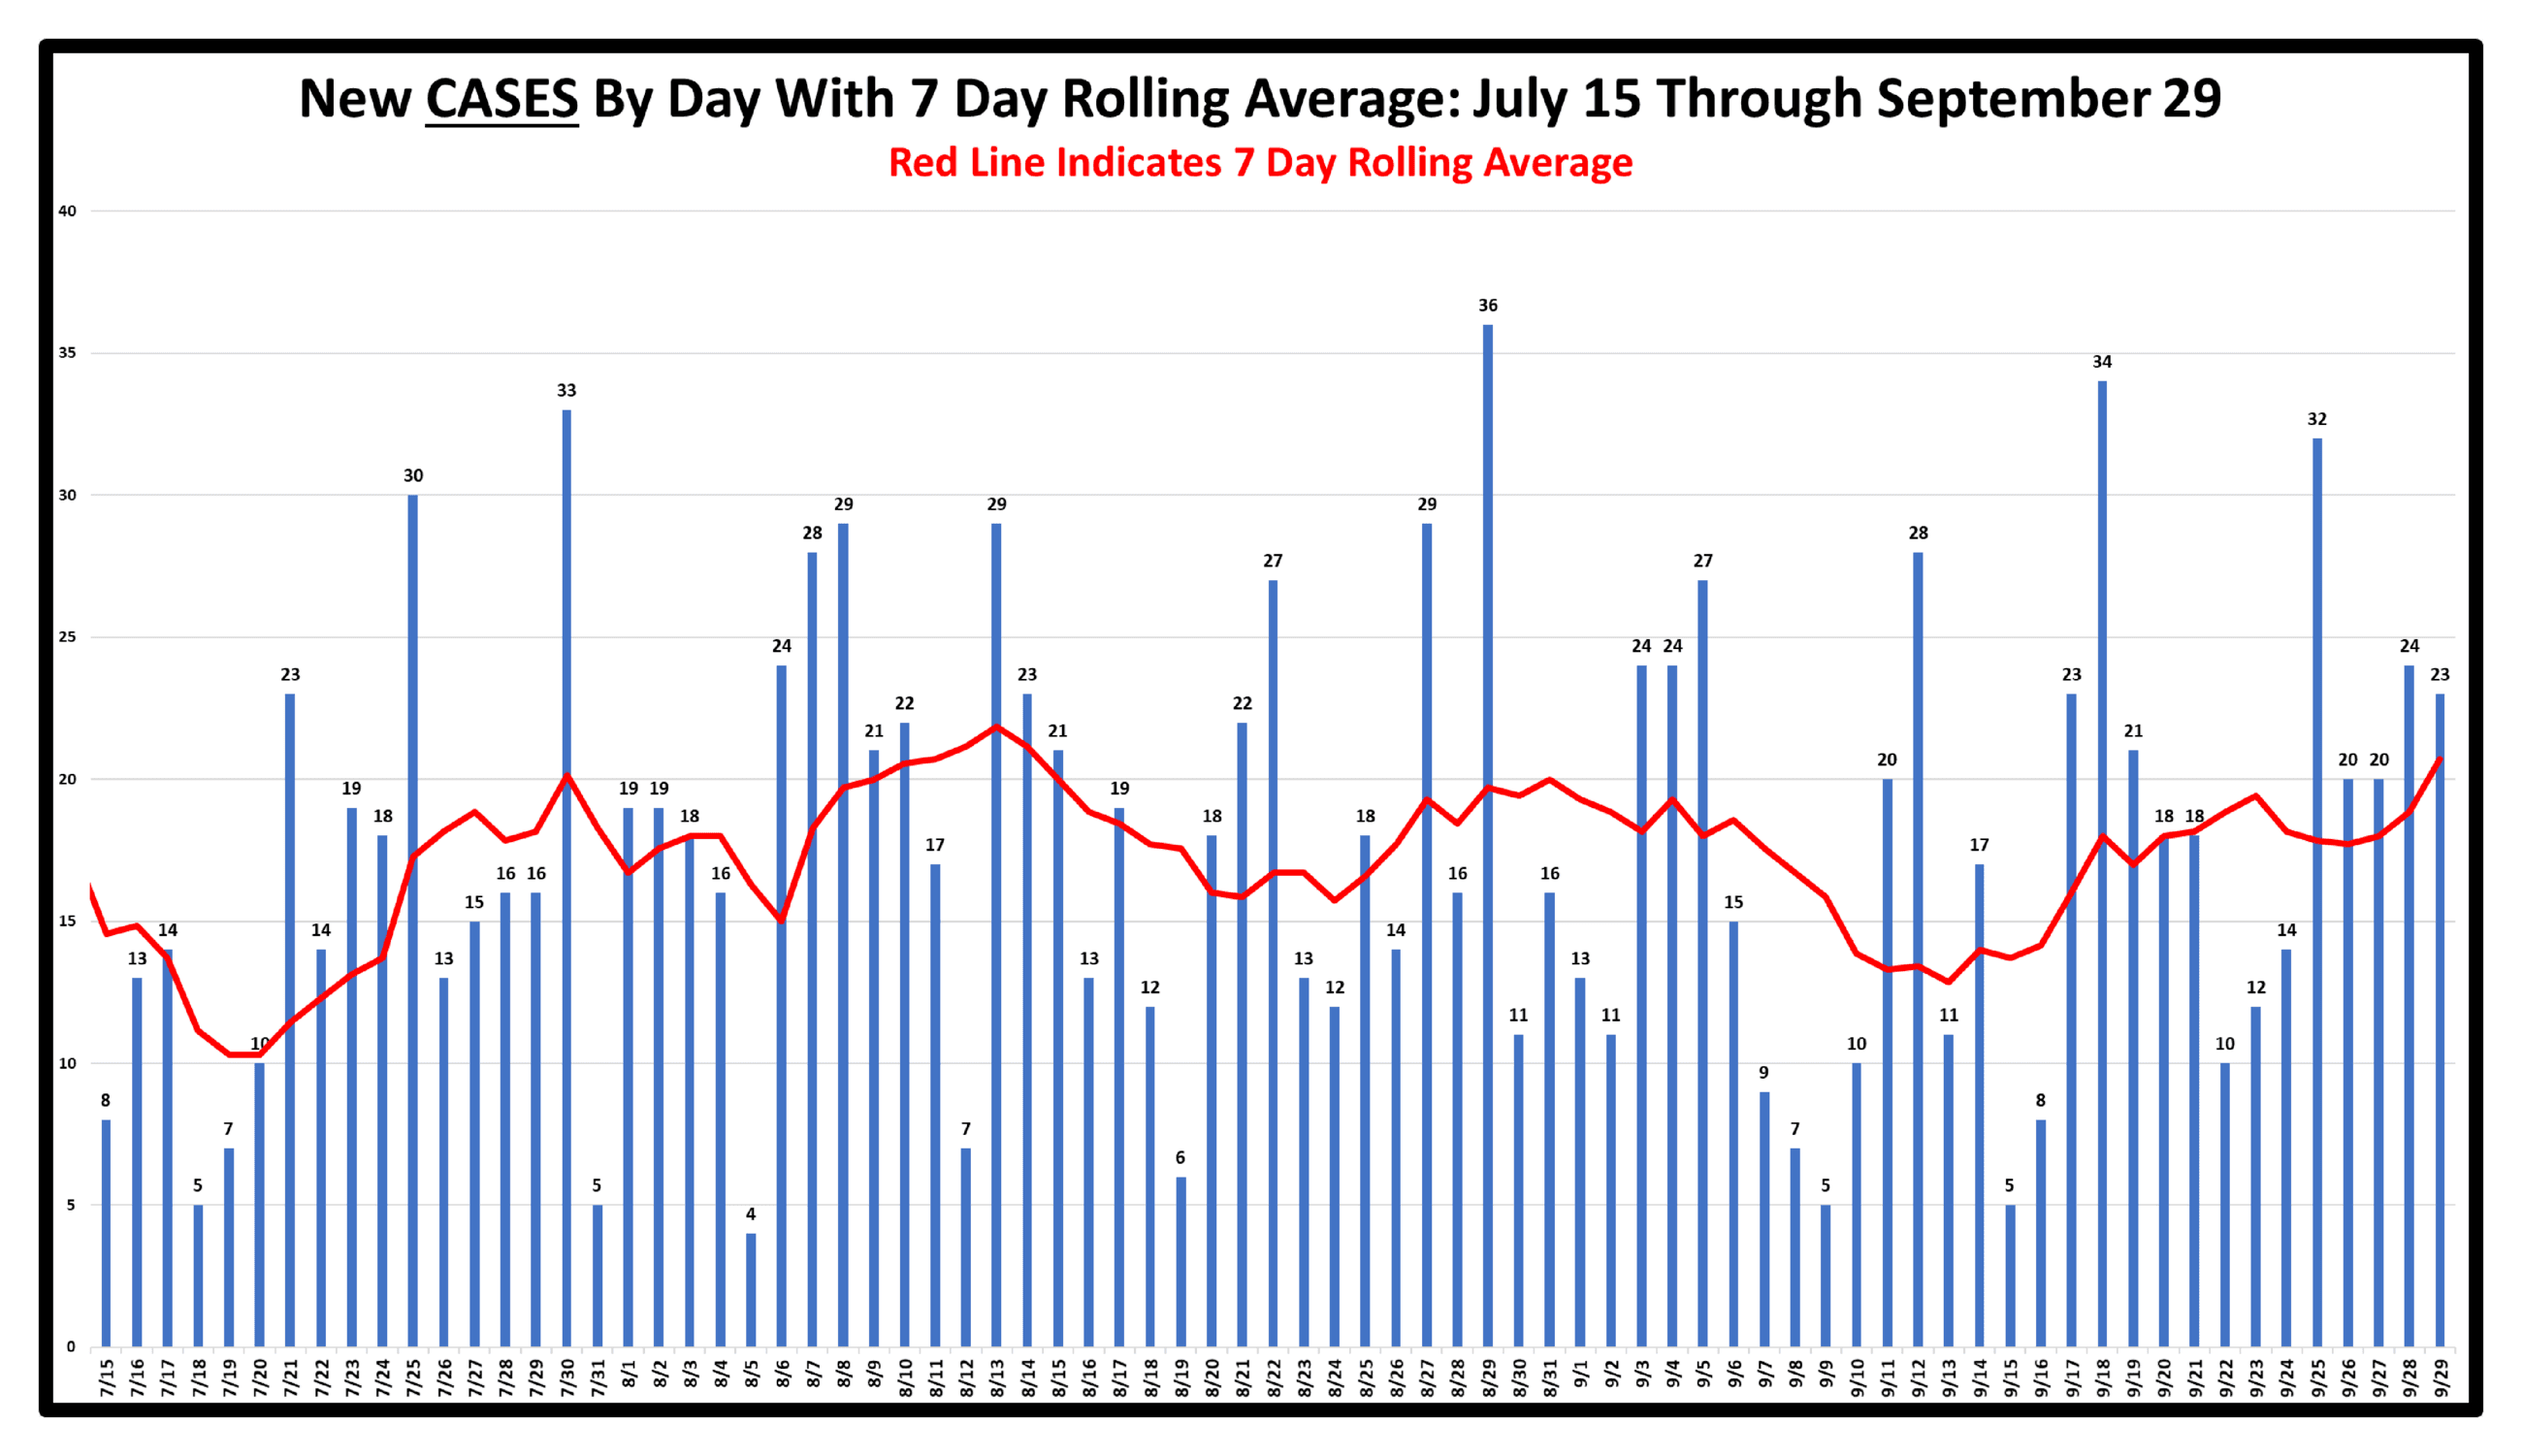 New Cases By Day With 7 Day Rolling Average As Of September 29